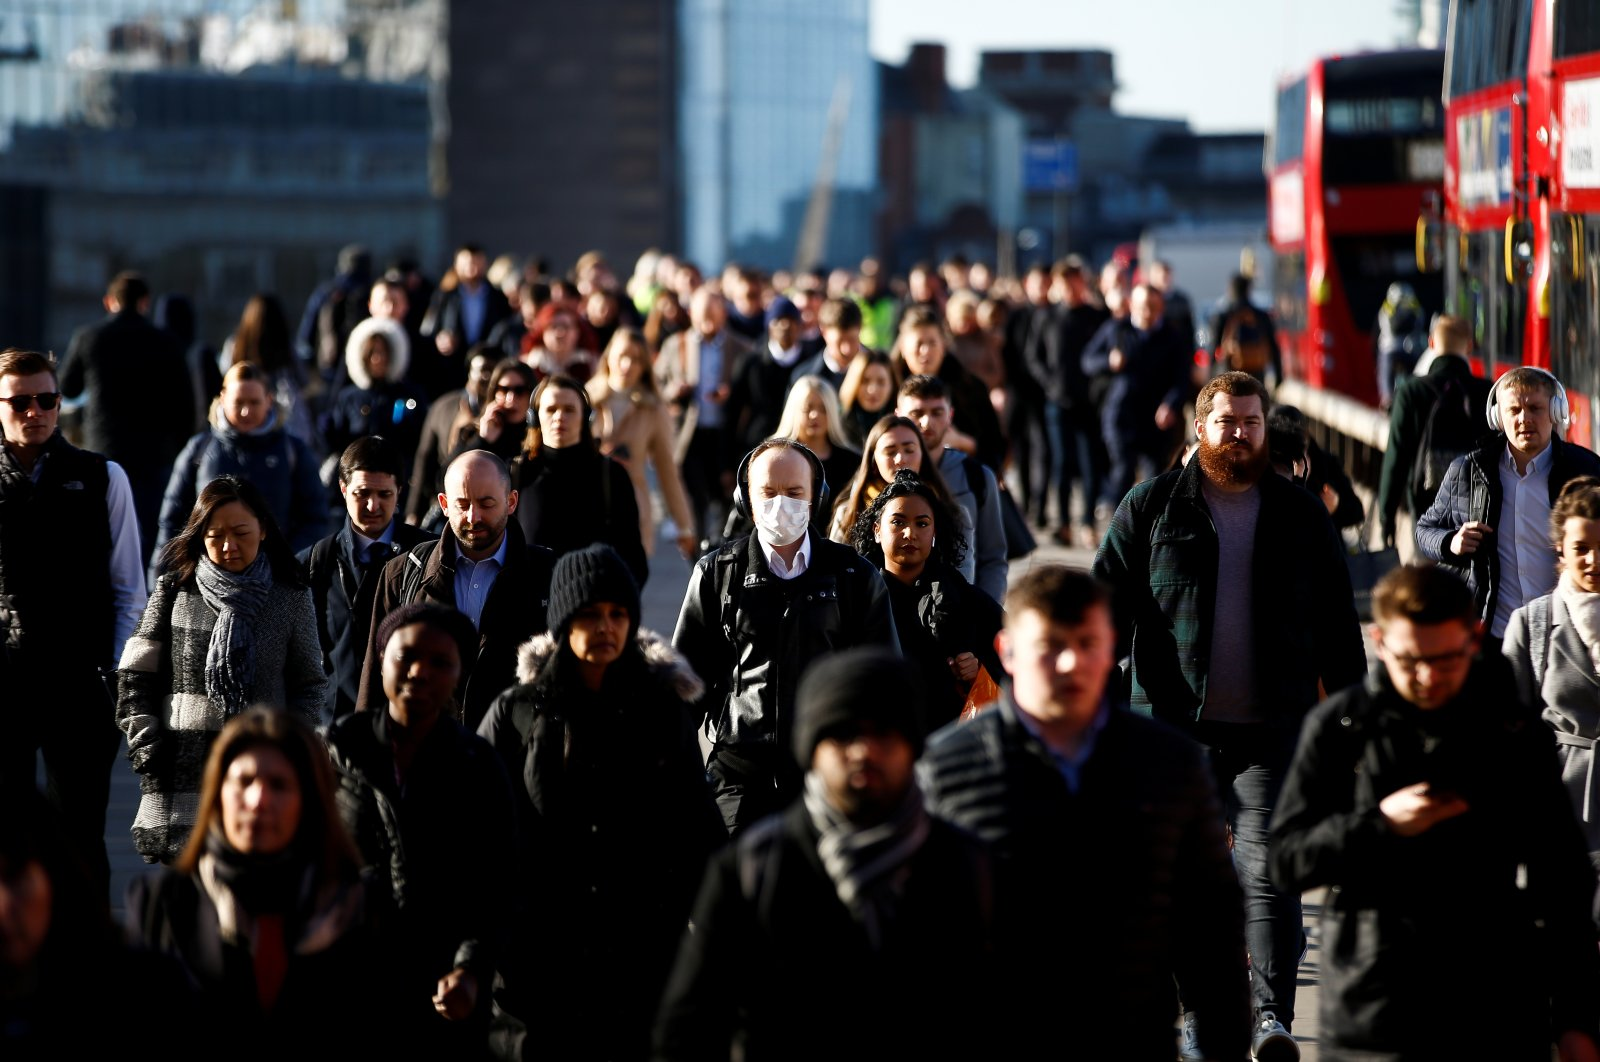 People, some wearing protective face masks, walk over London Bridge, London, Britain, Monday, March 16, 2020. (Reuters Photo)